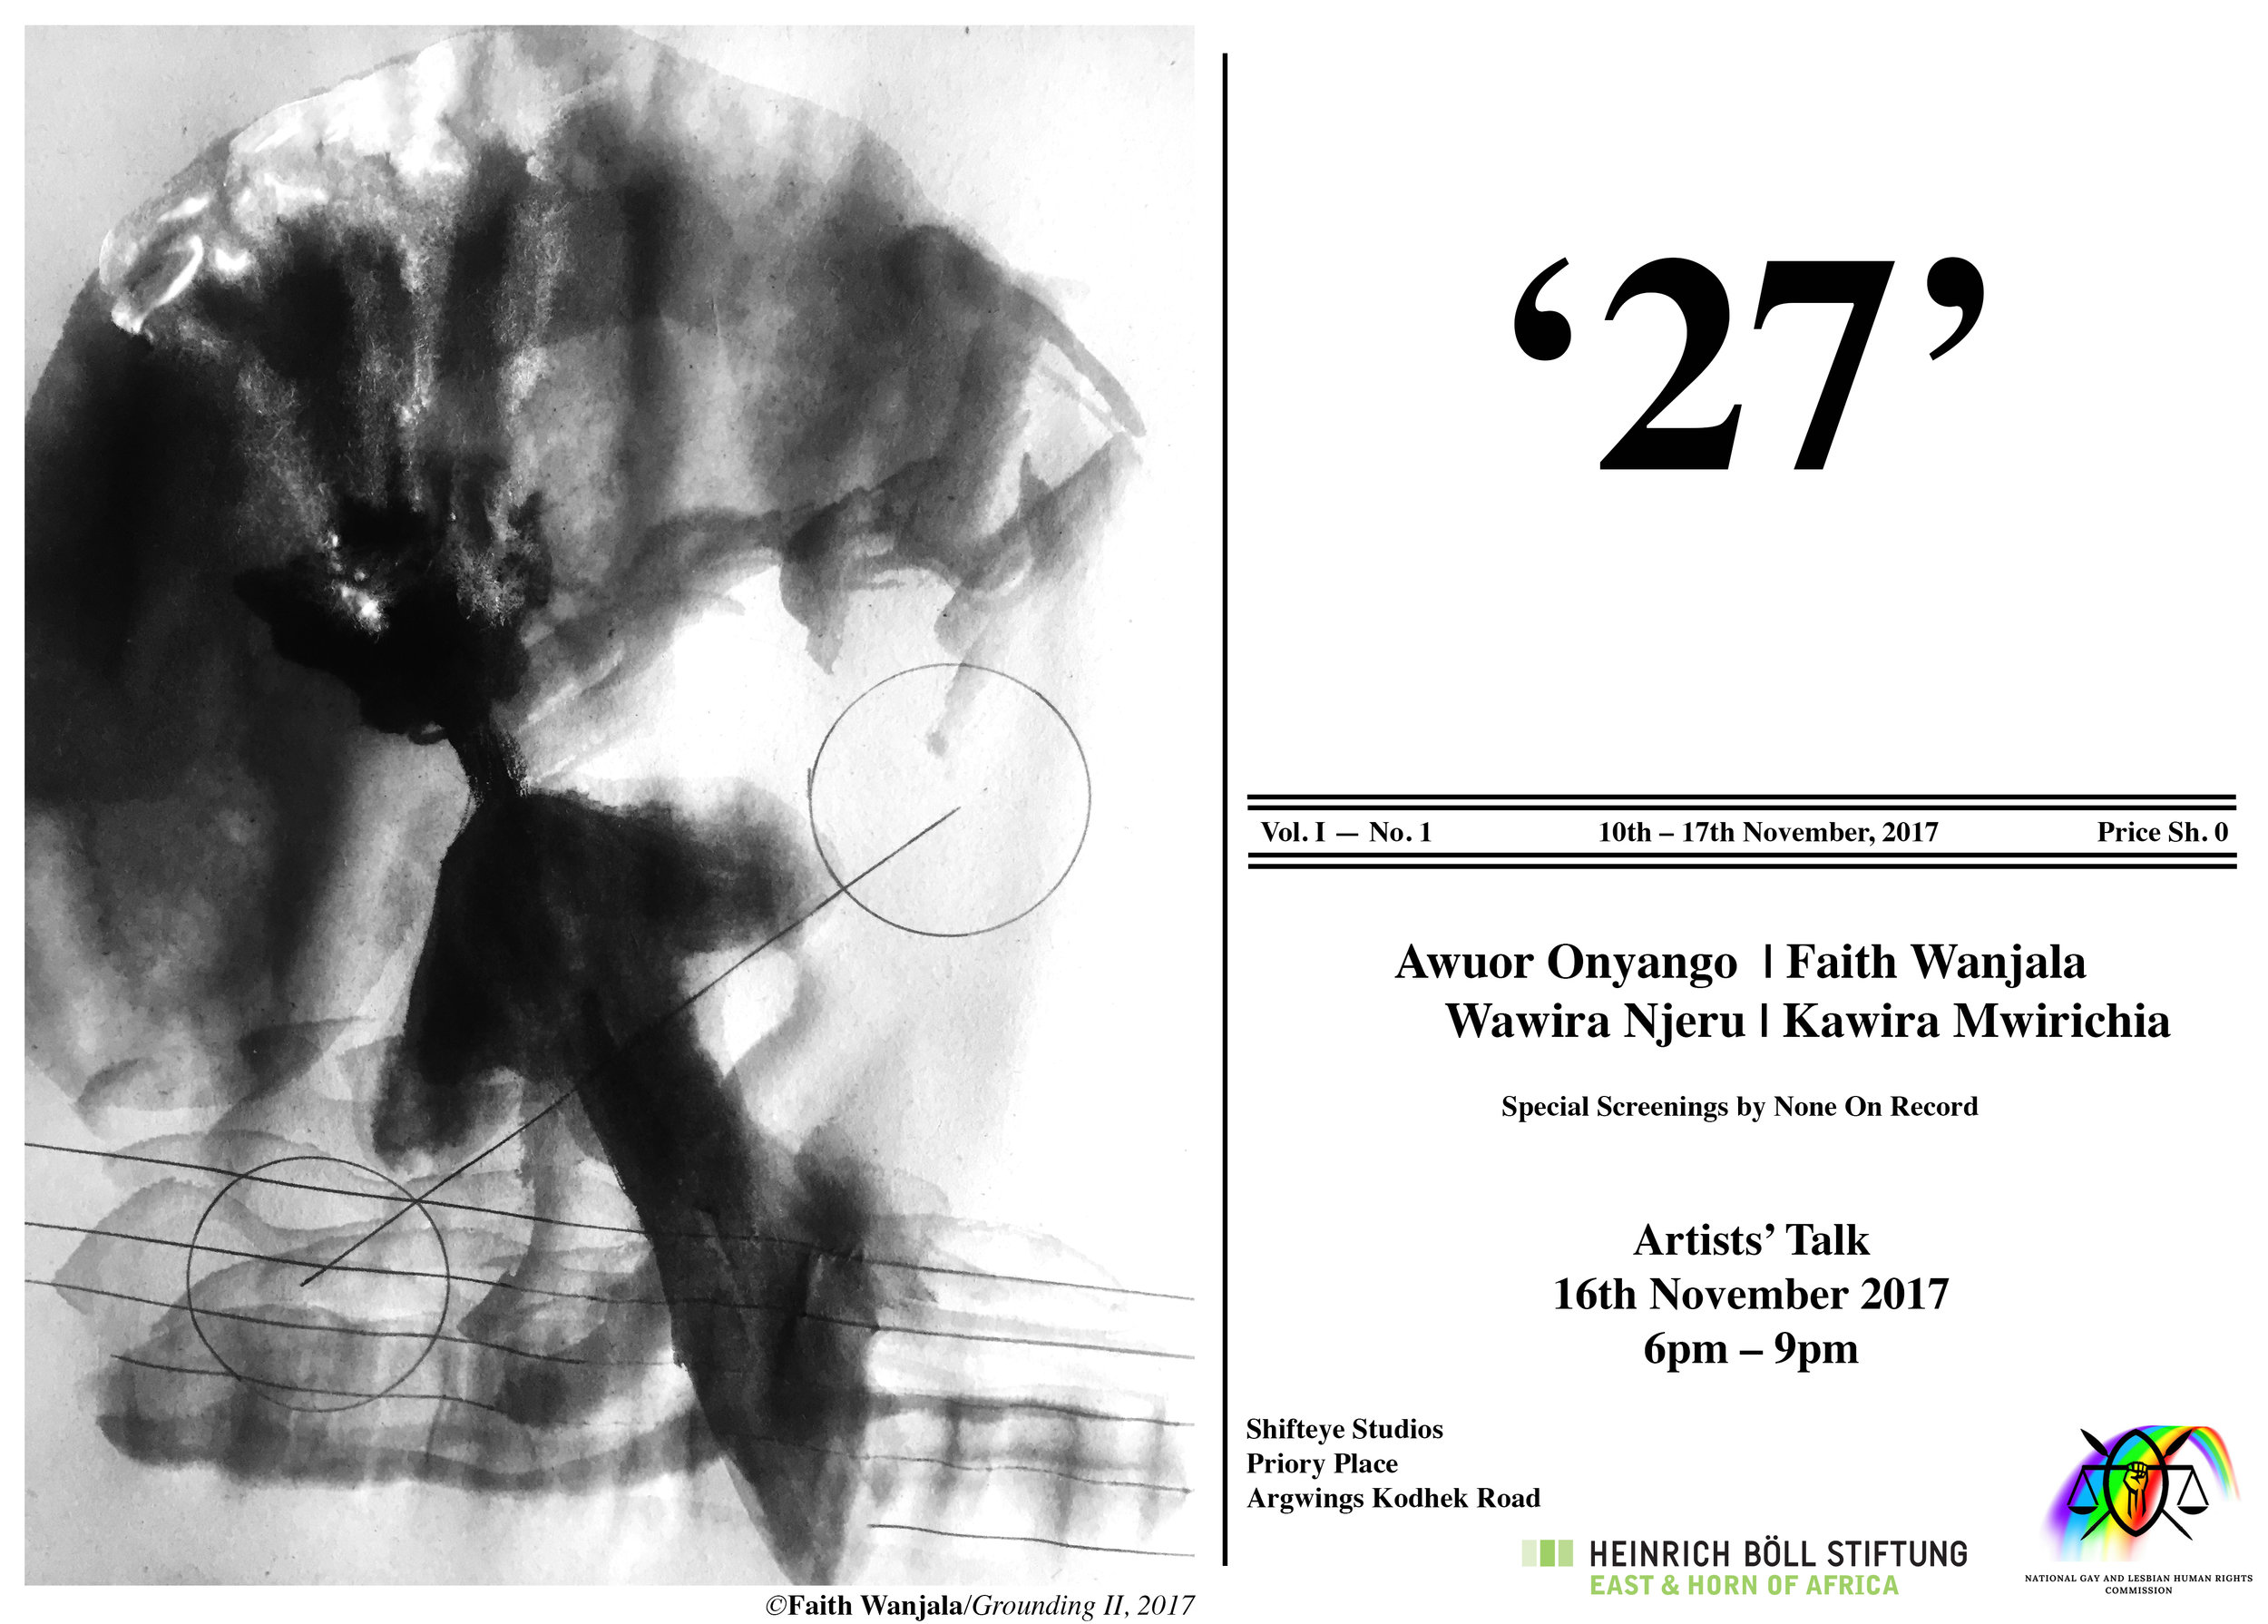 Article 27 Artist Talk E-Invite_07.11.2017.jpg